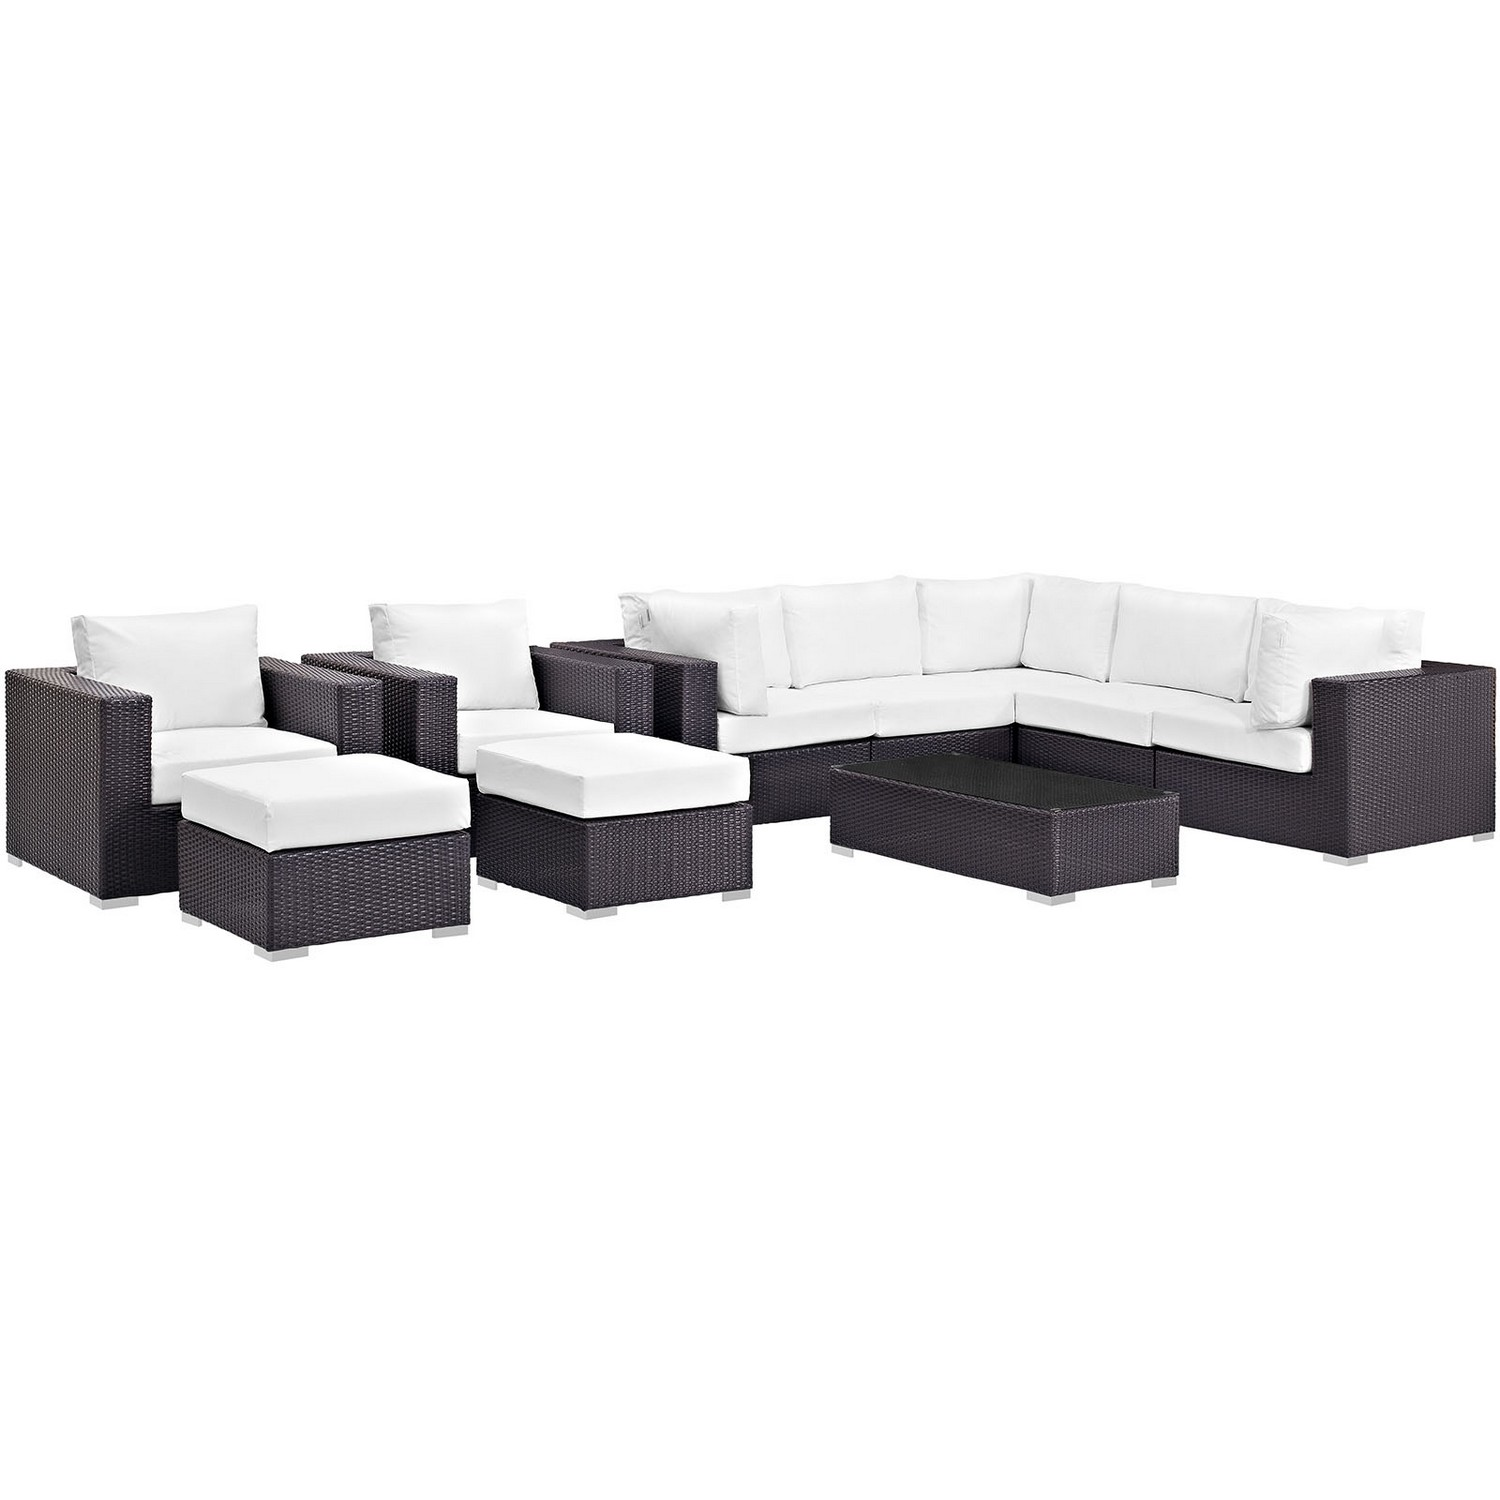 Modway Convene 10 Piece Outdoor Patio Sectional Set - Espresso White